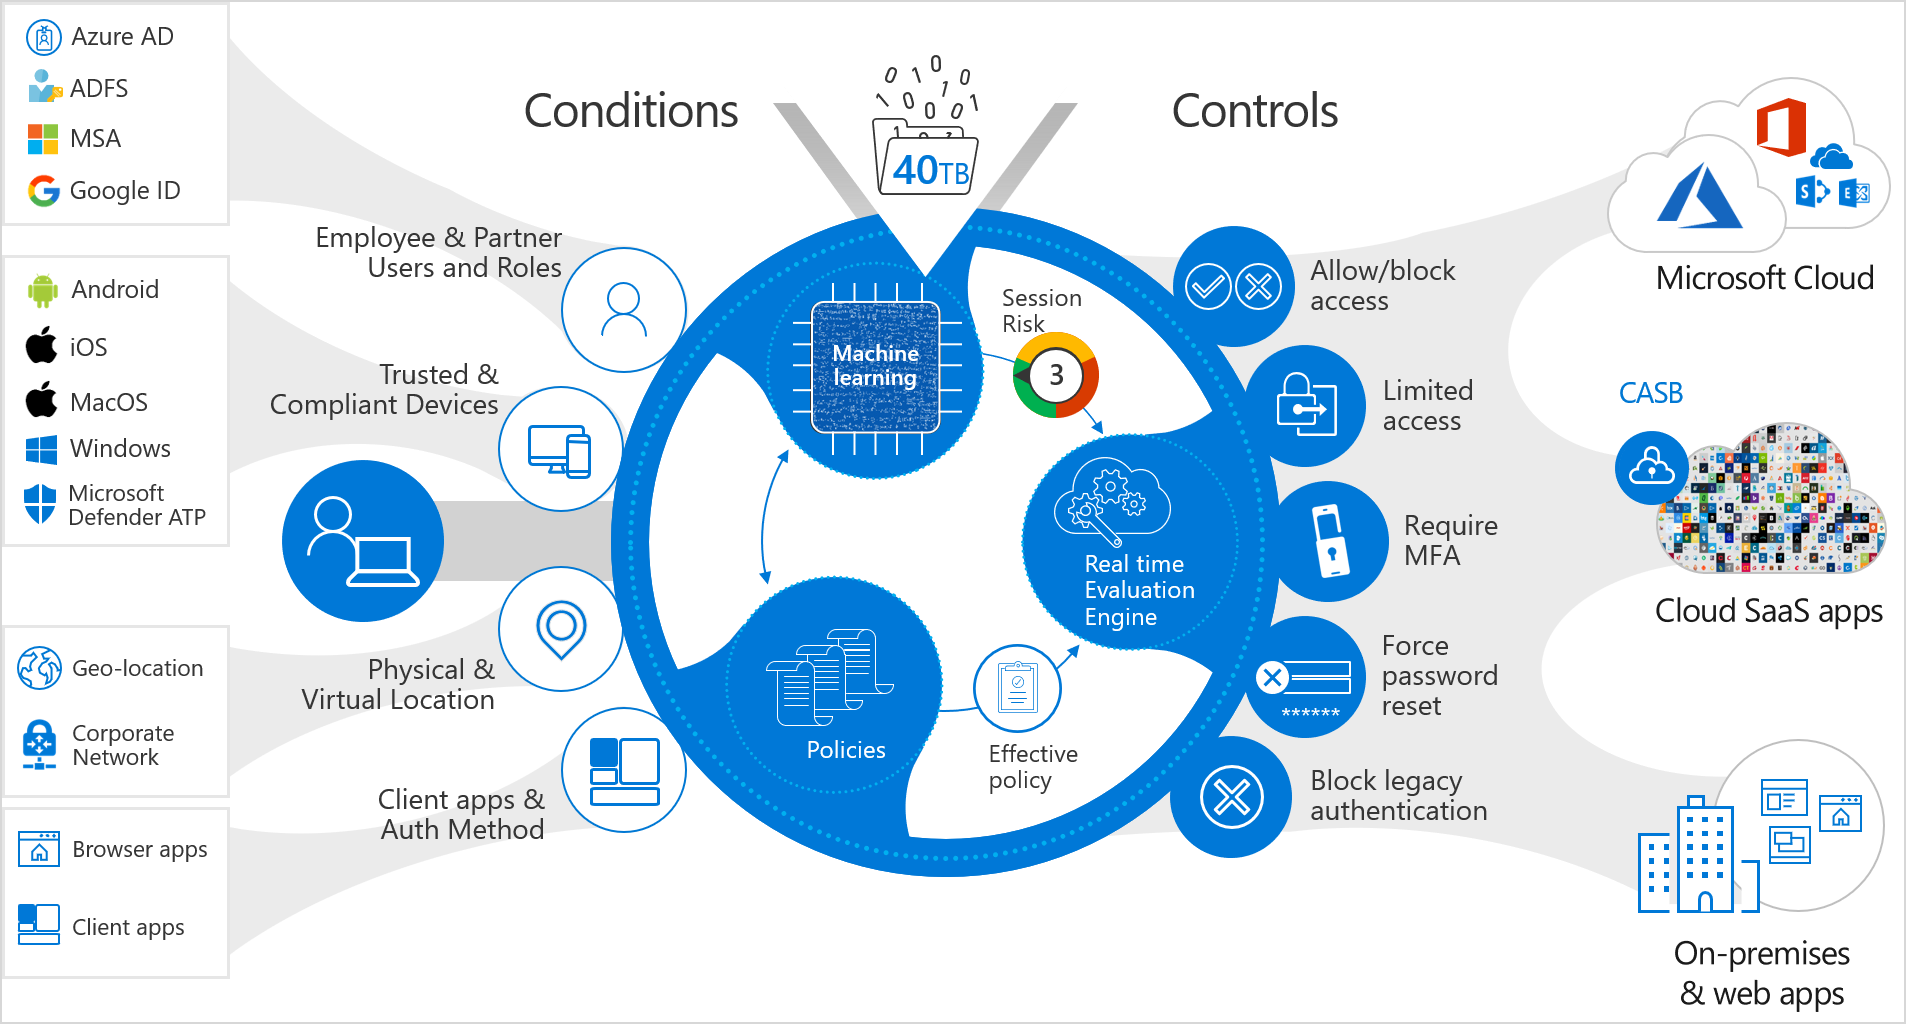 Image showing conditional access policy possible conditions (which user, on what device, from where, which app), the 40 TB of real-time data assessment, and the controls applied to the access request based on conditions.